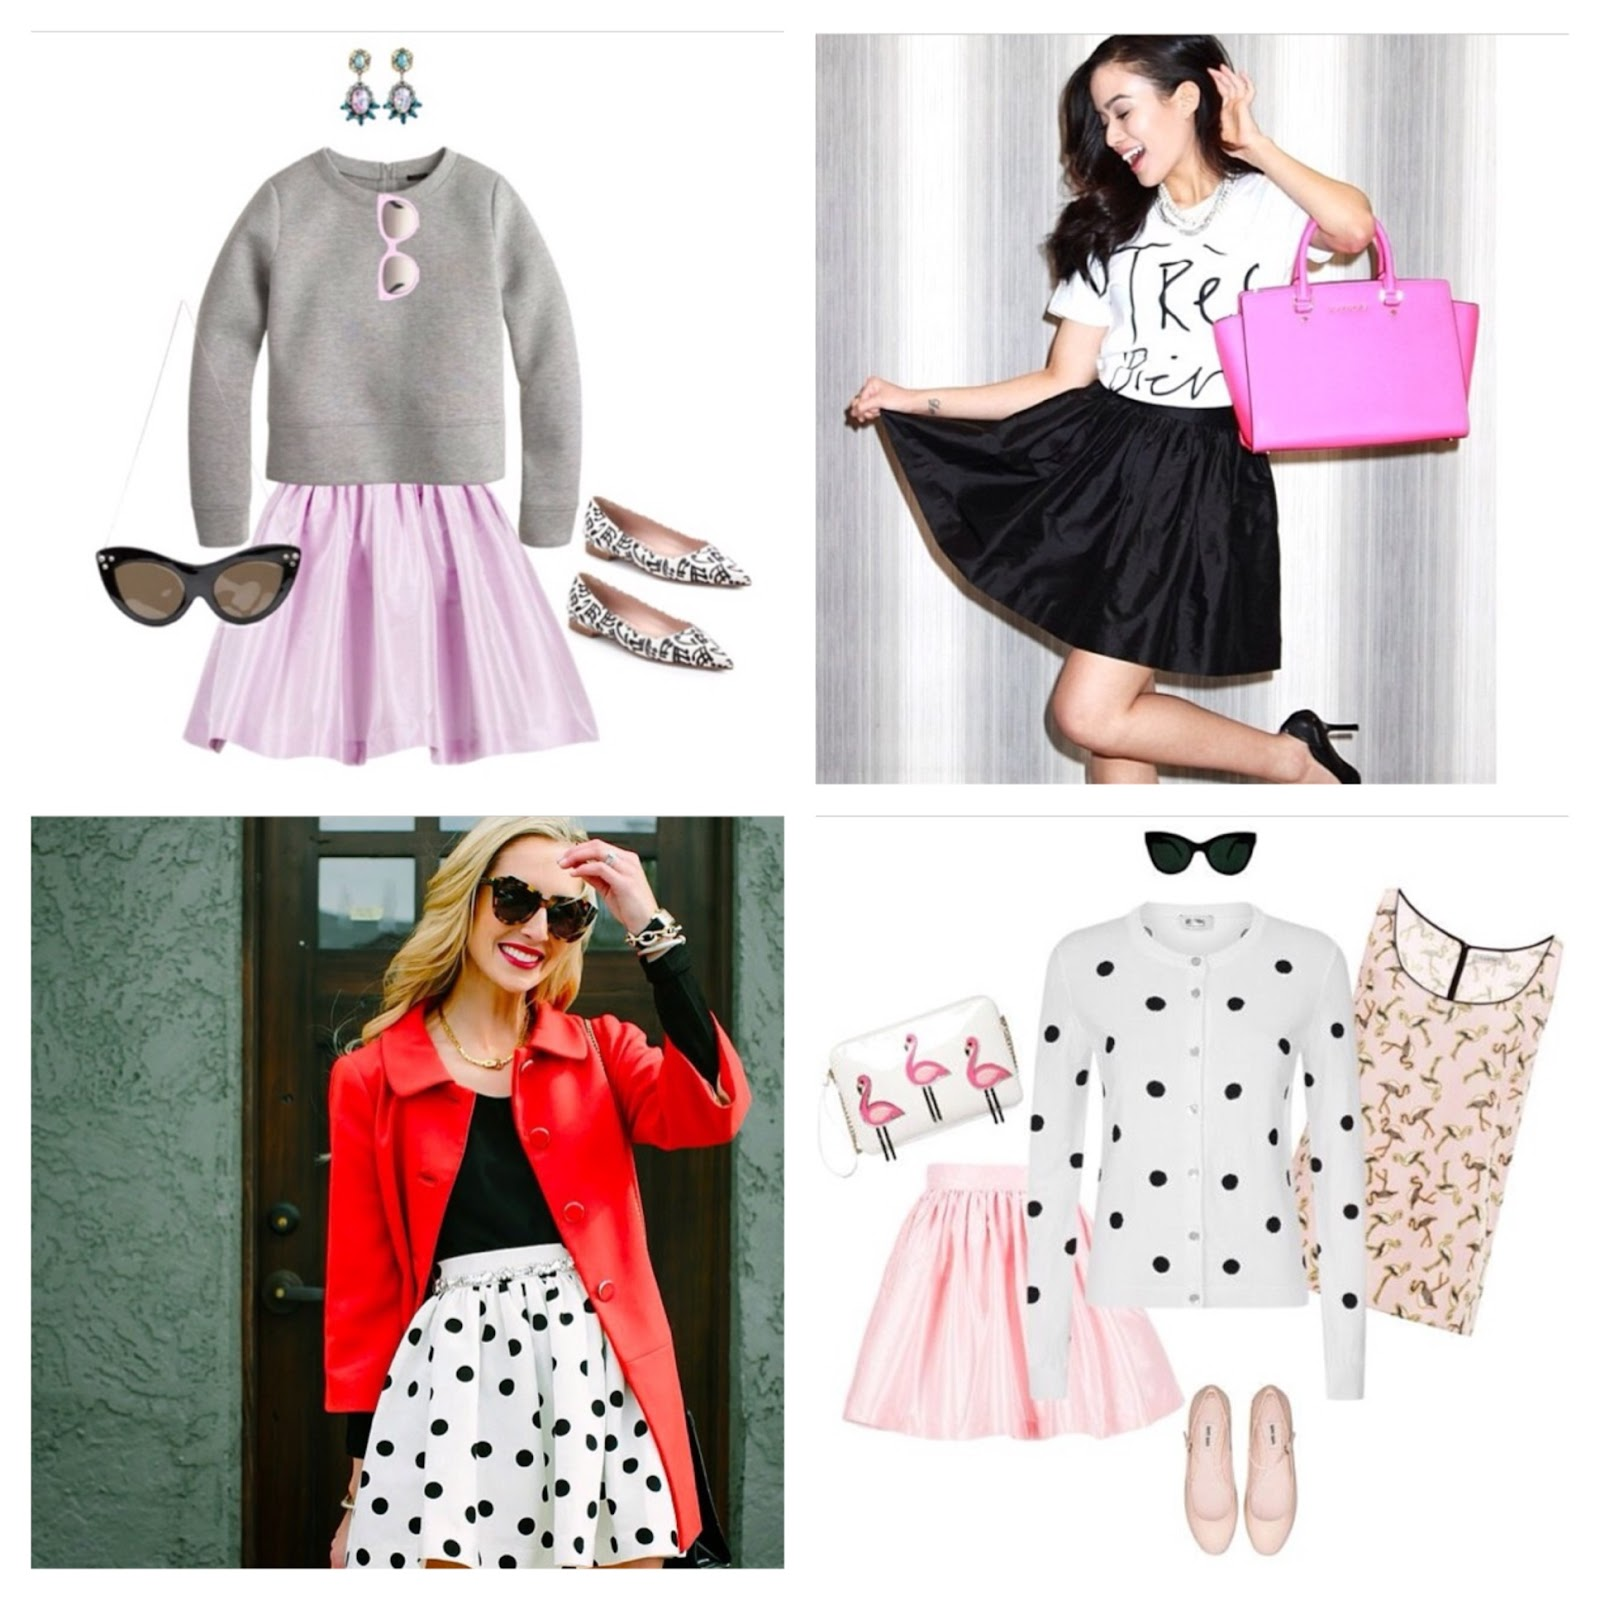 party skirts, polyvore polka dot skirt flat lay collage